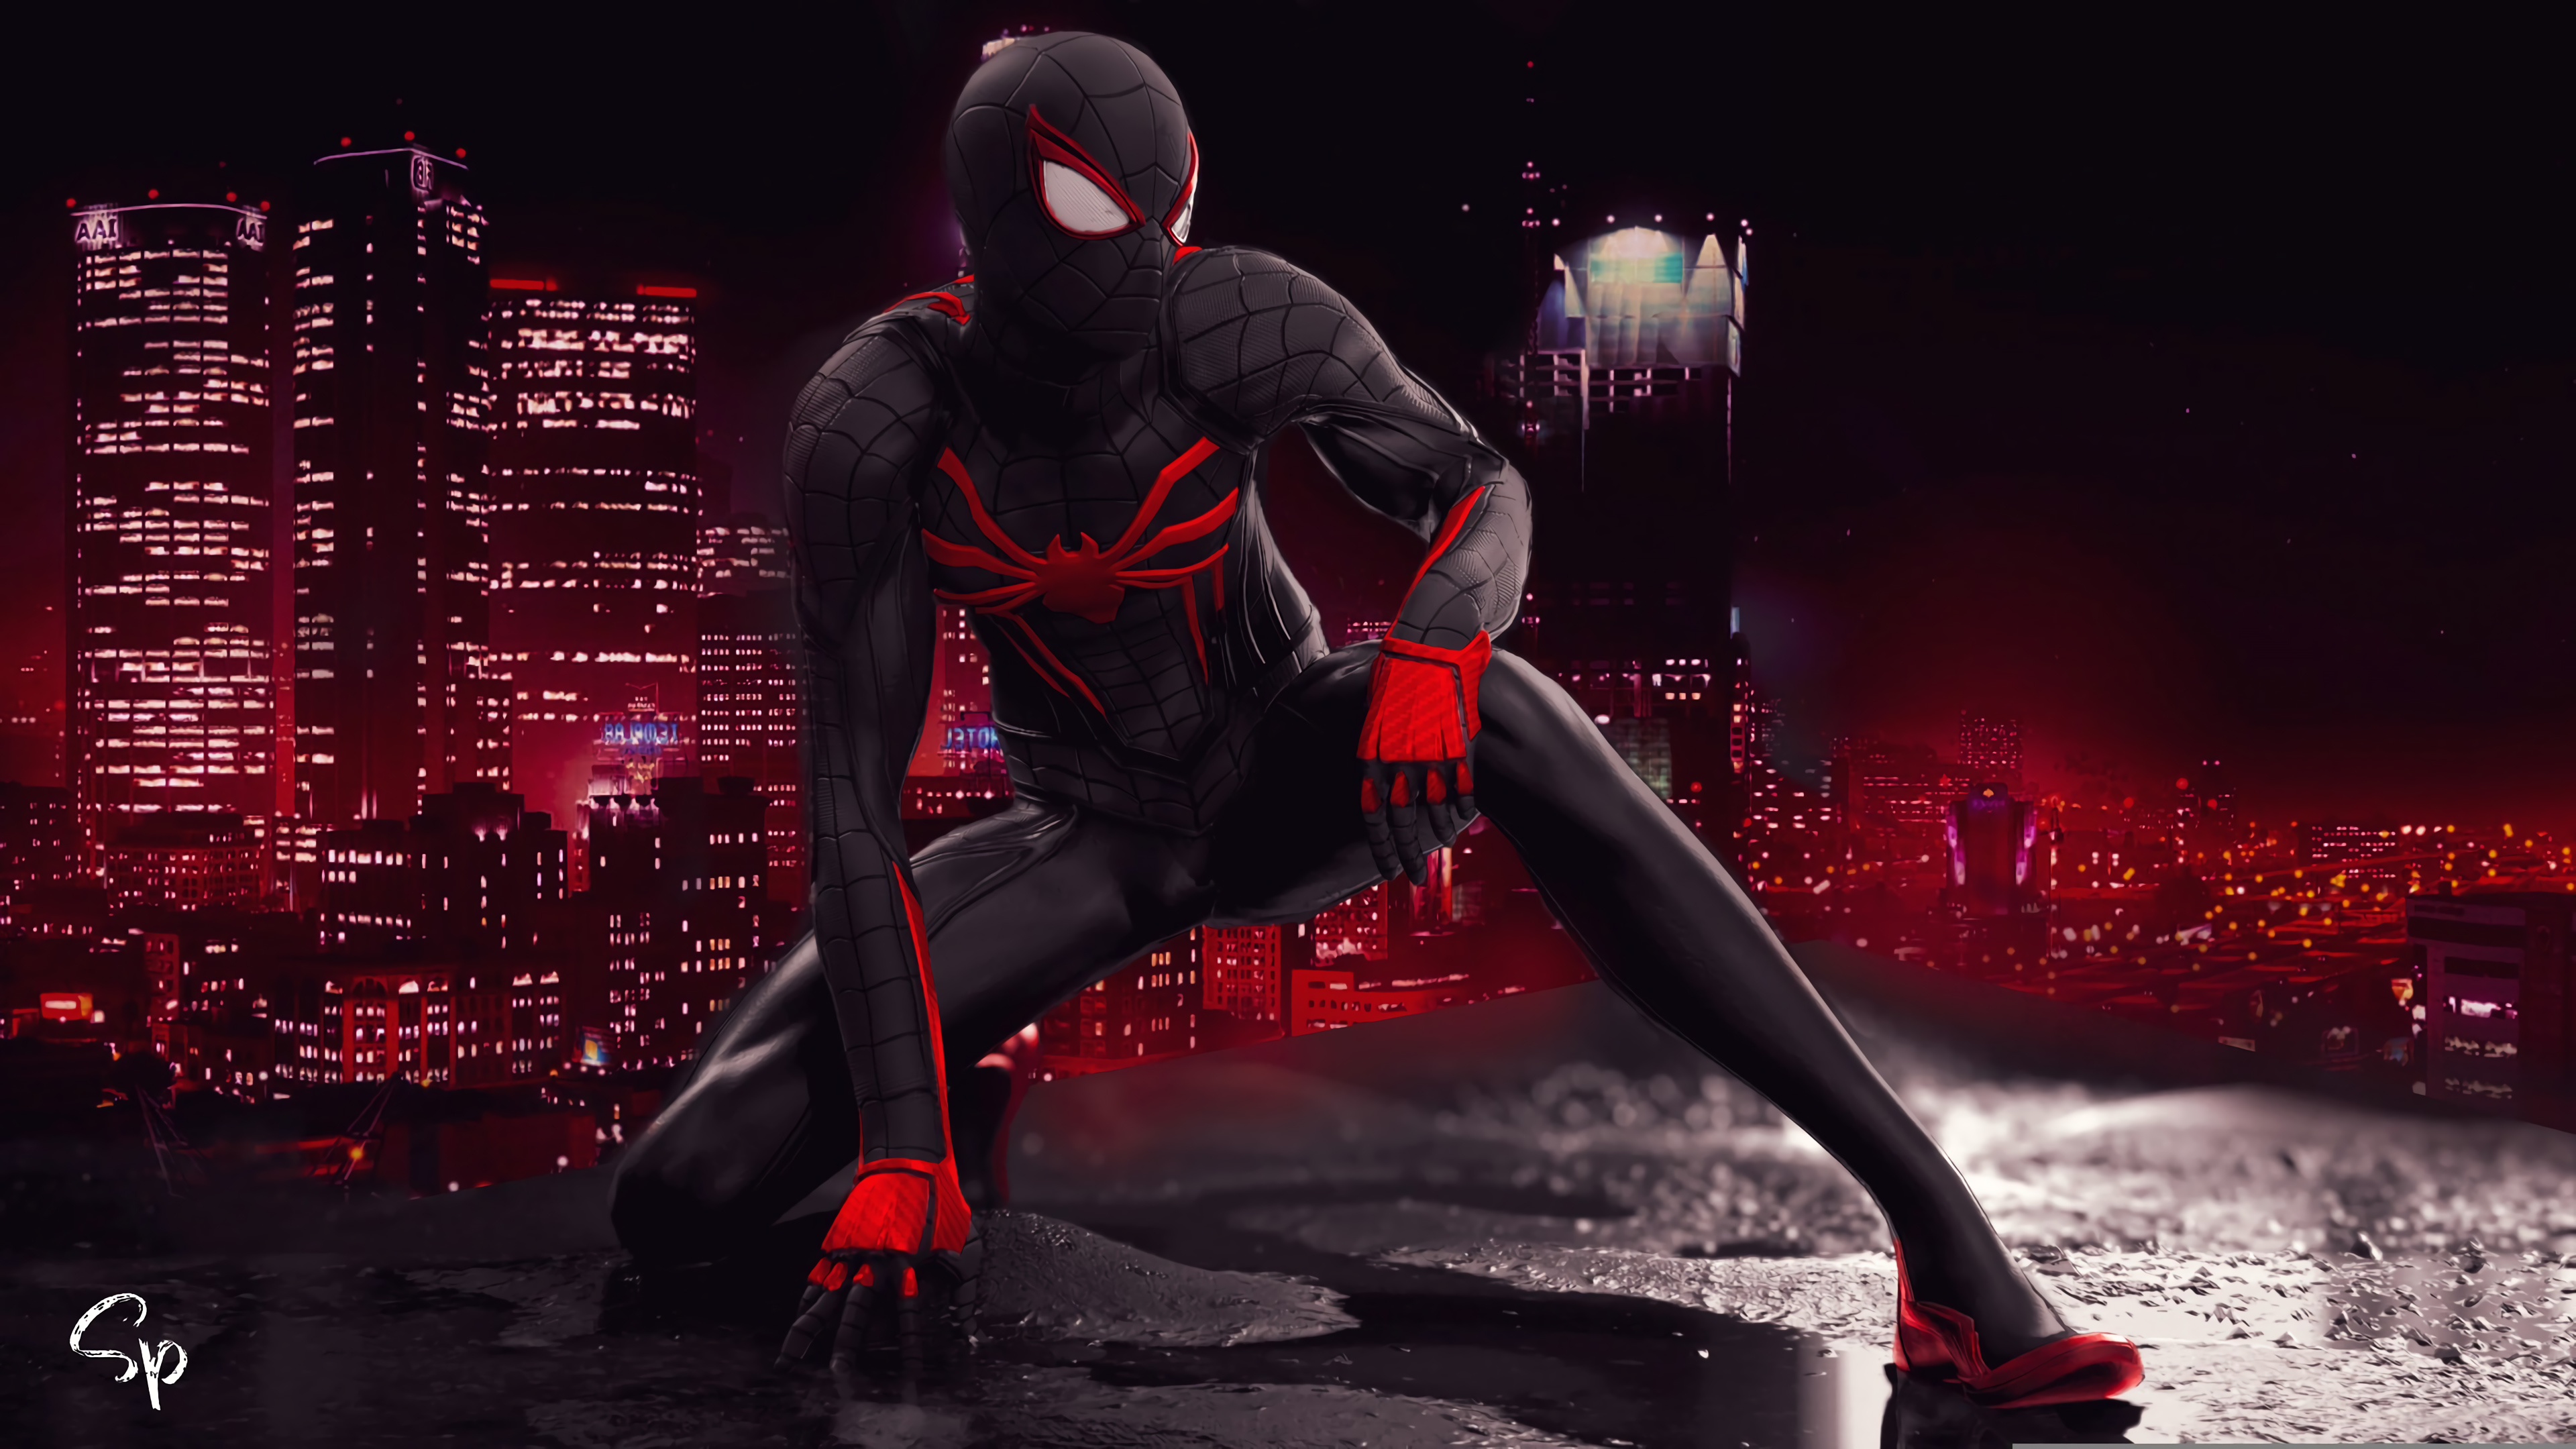 Spider Man Red And Black Suit Art Wallpaper, HD ...